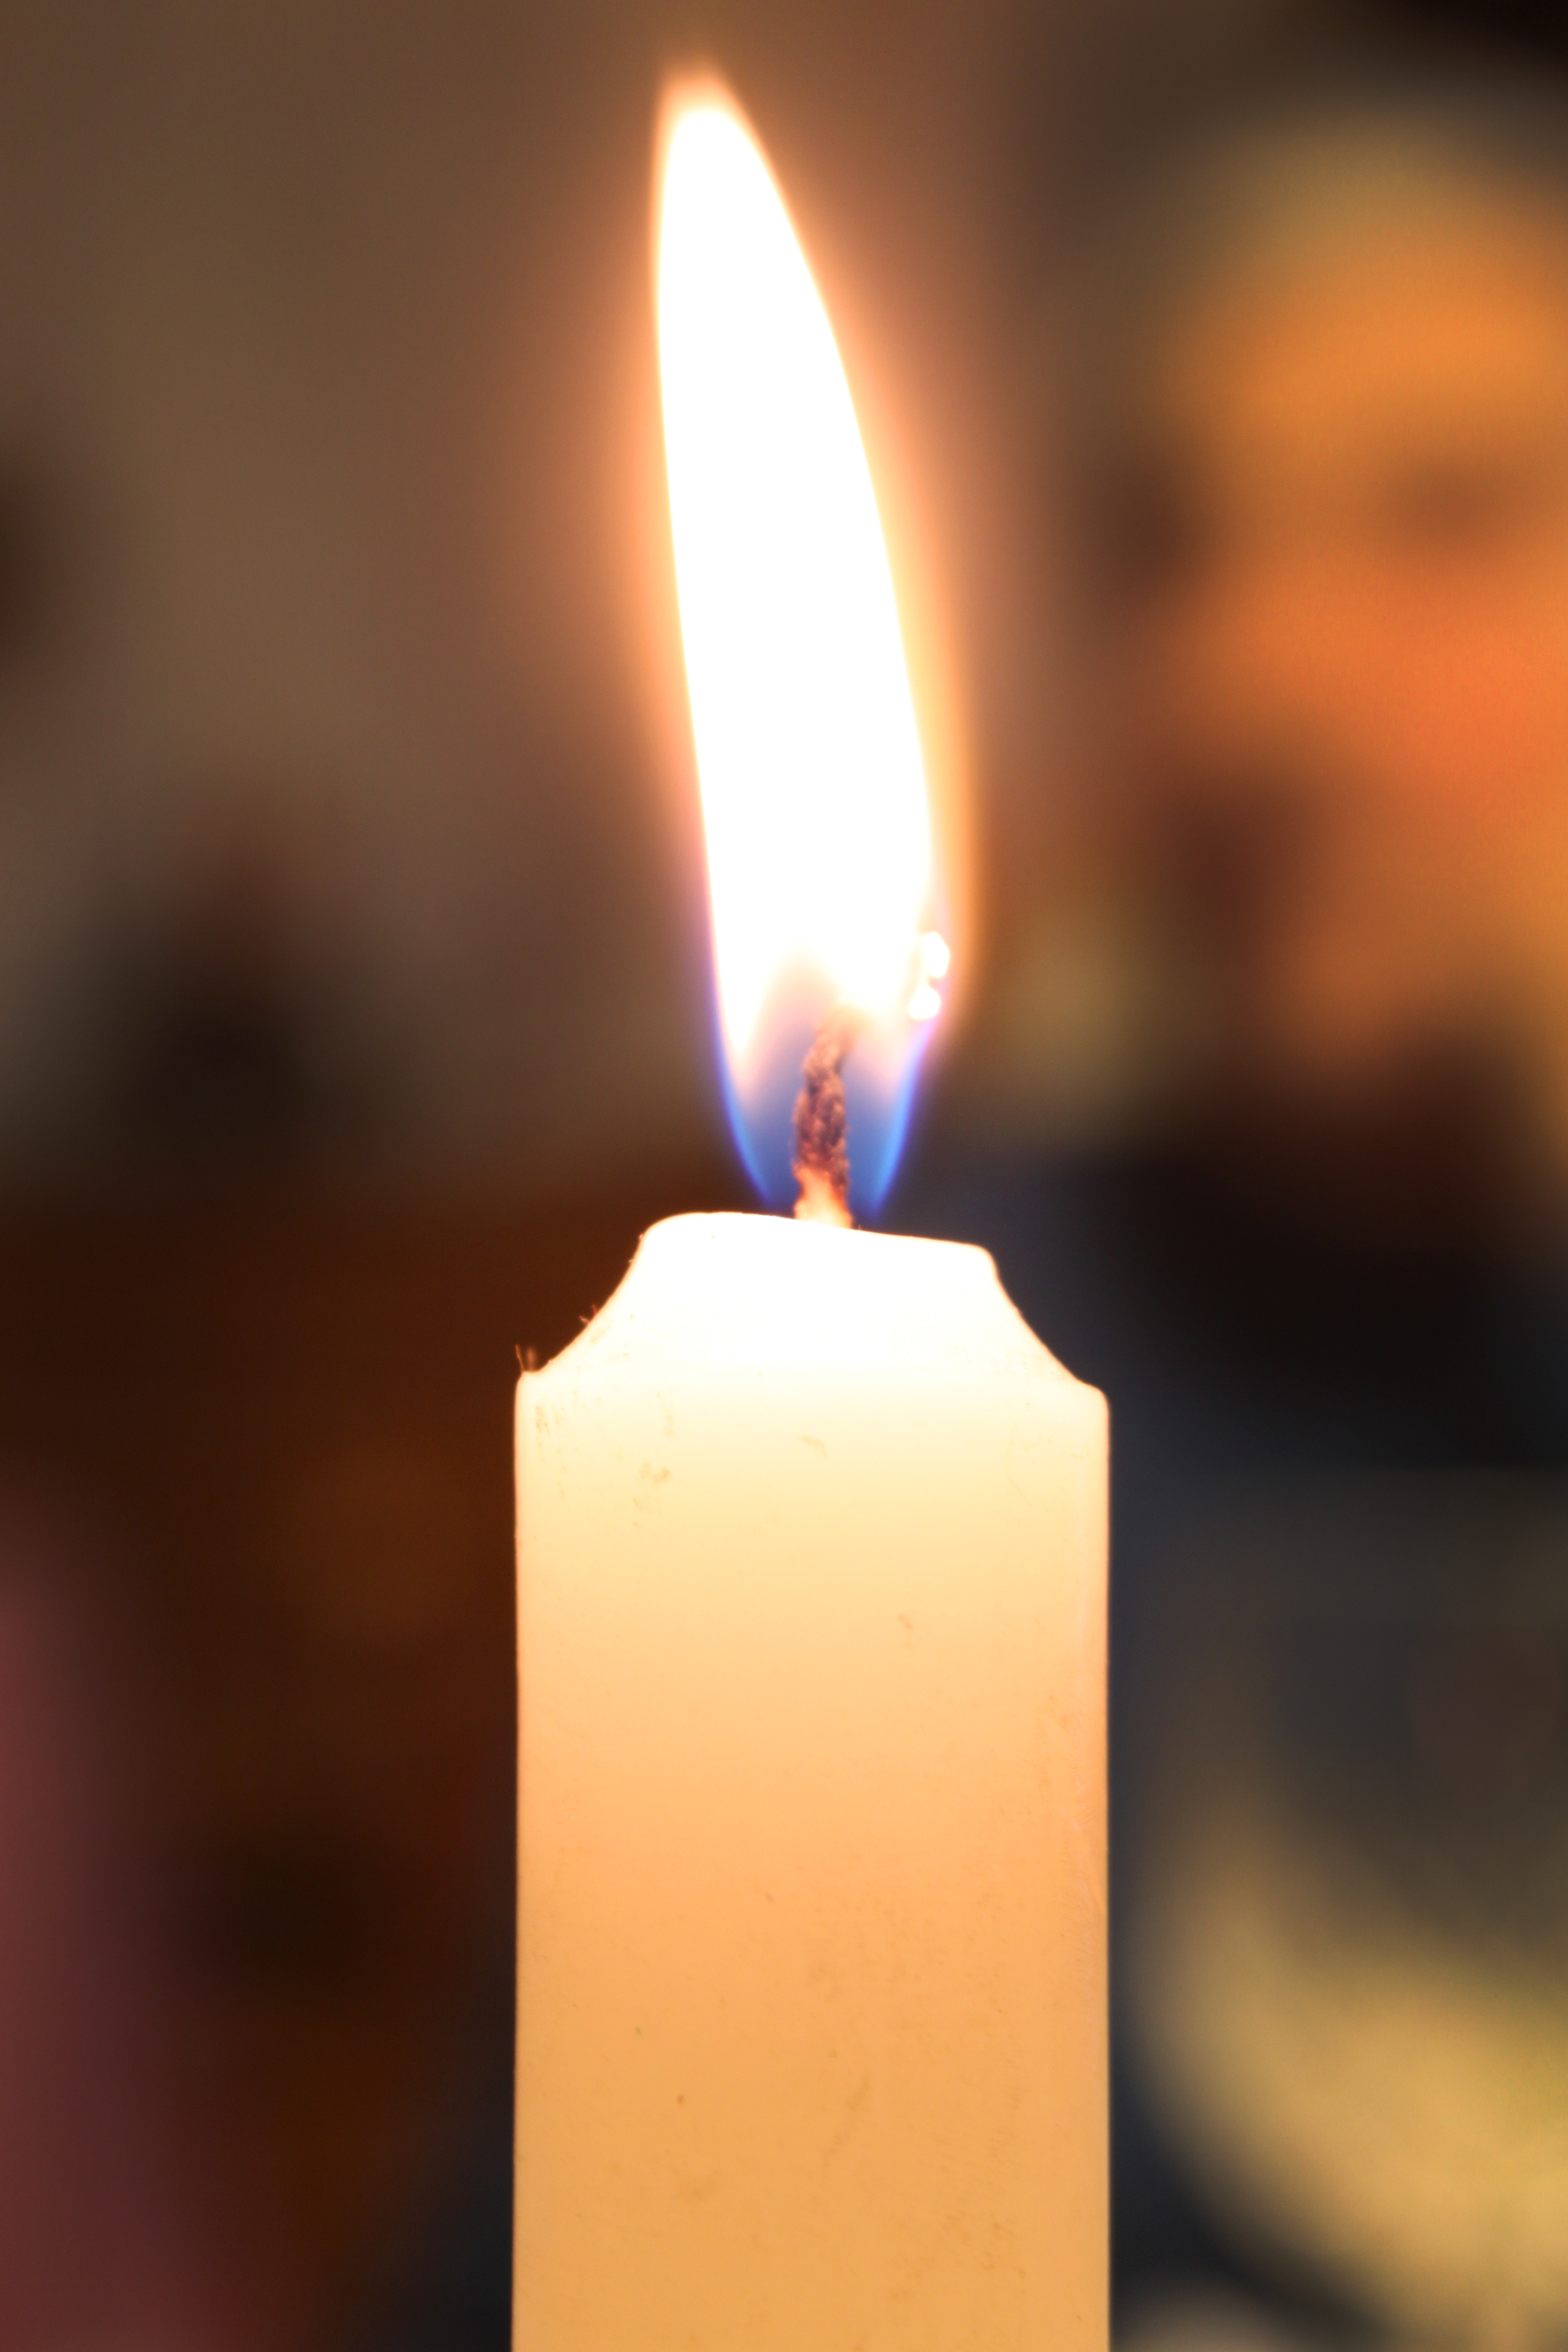 Using Candles Safely